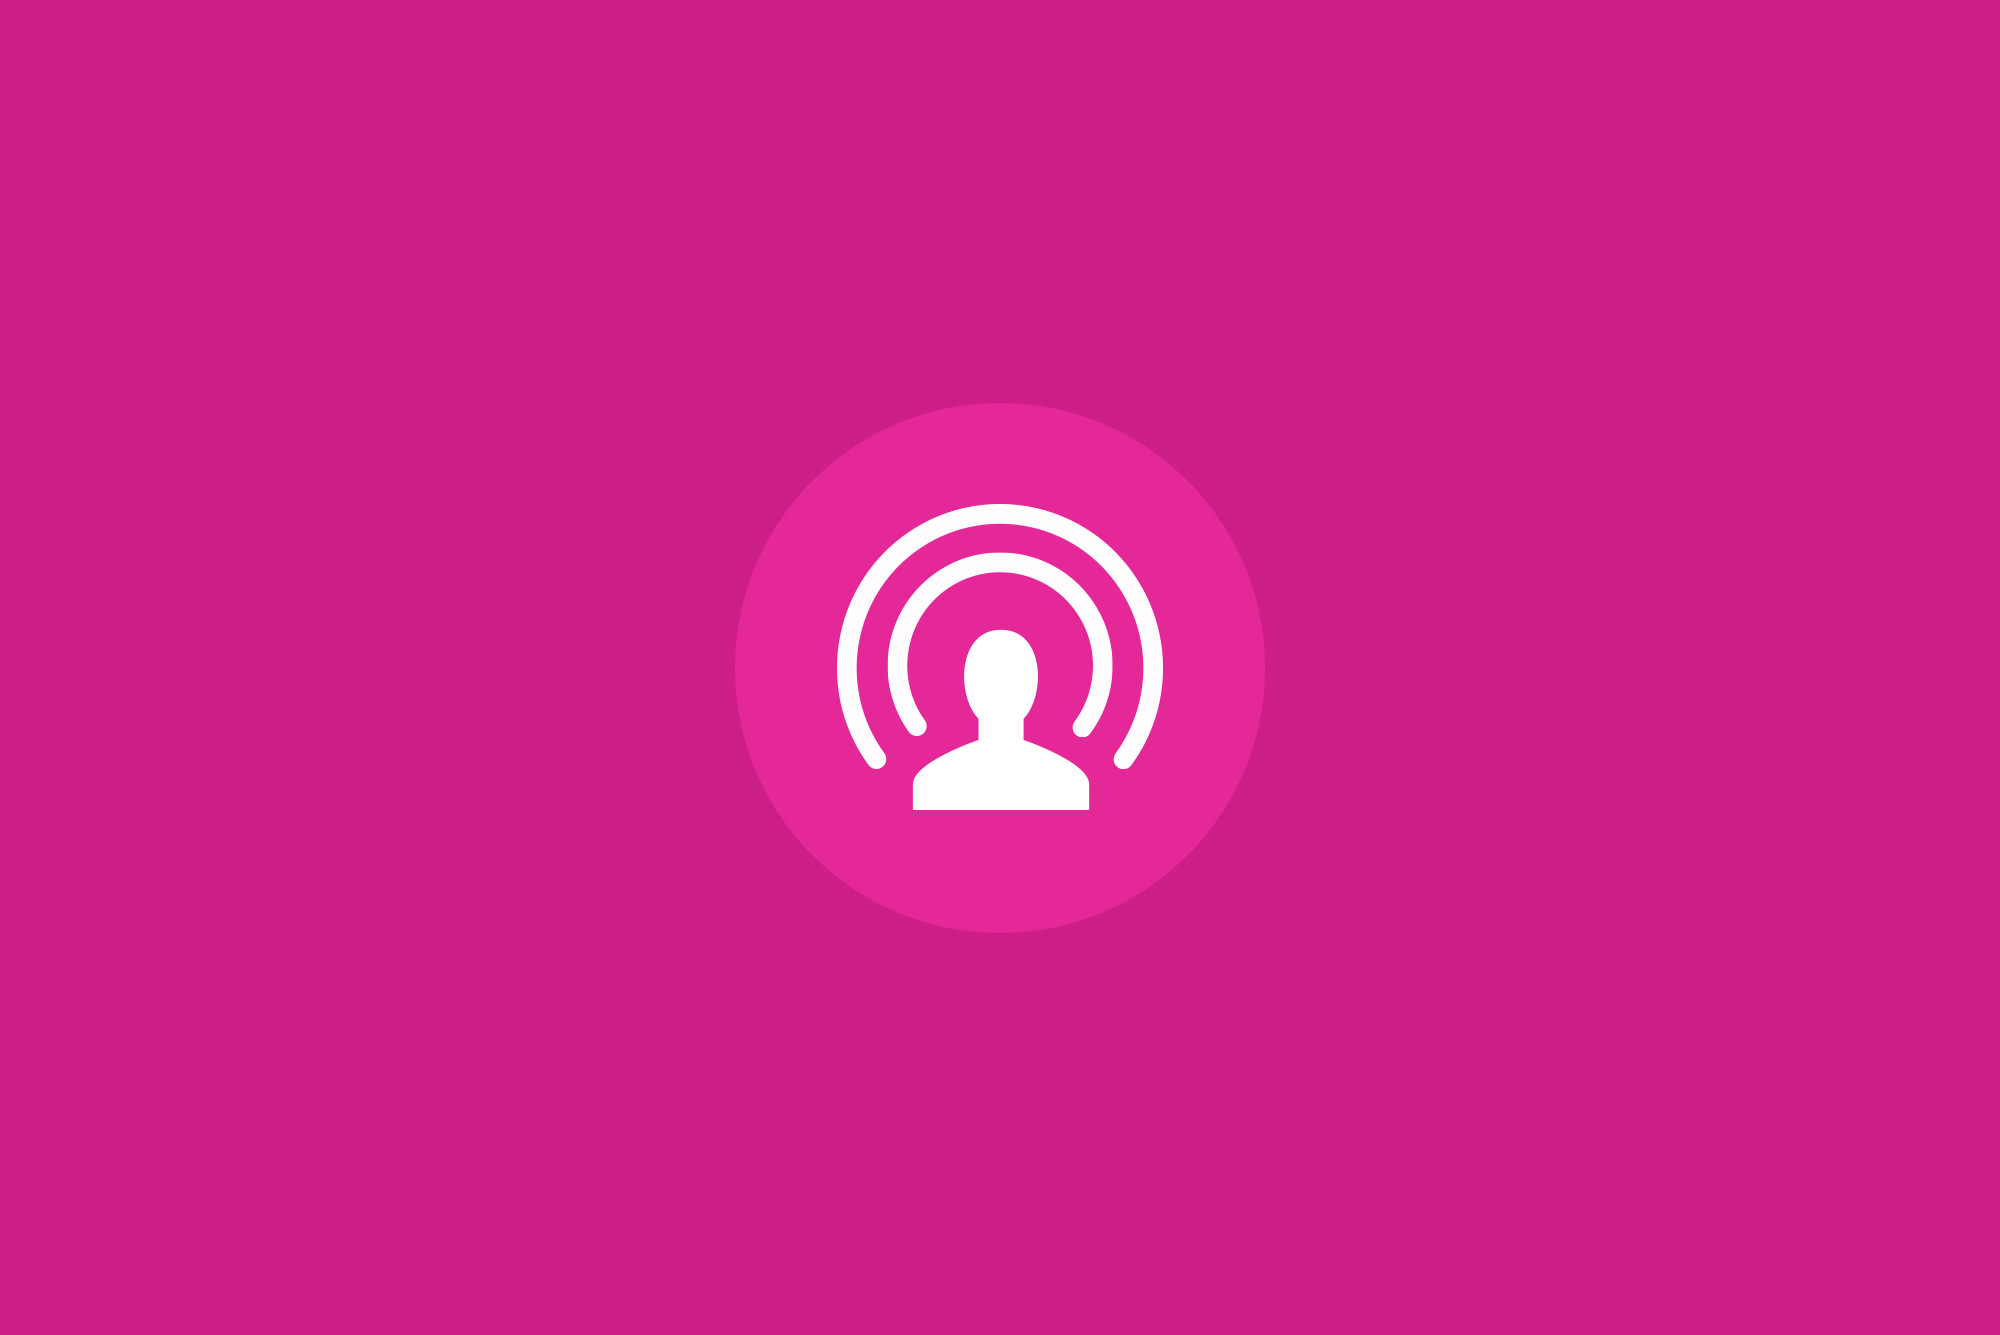 Live video icon in white with a pink background